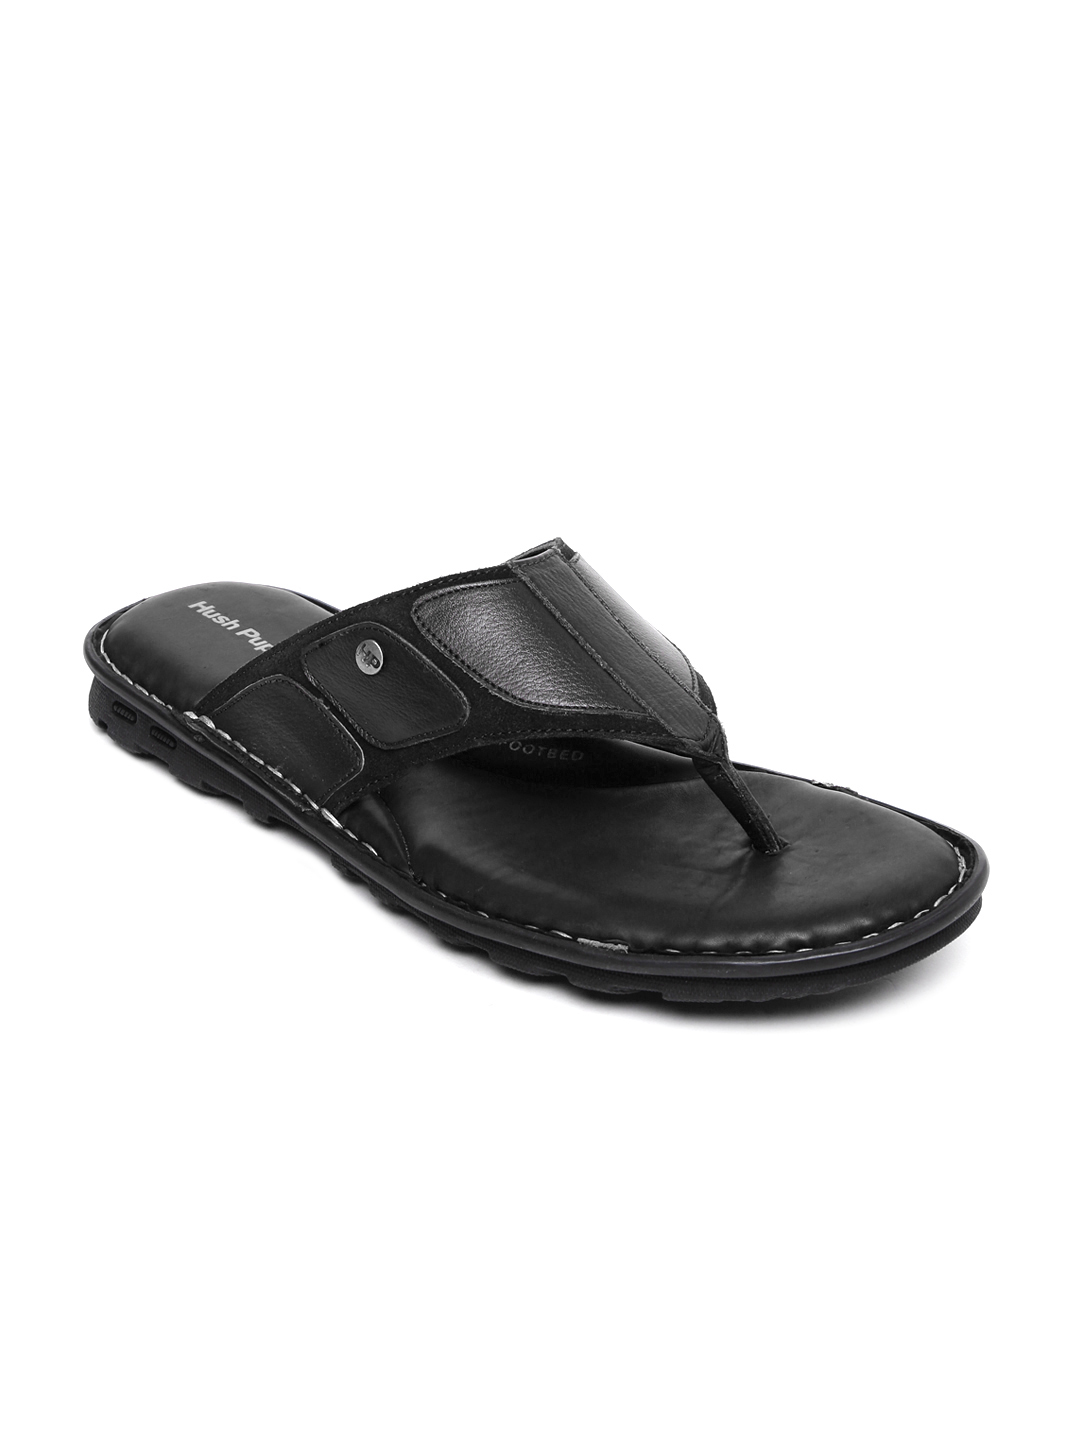 Hush Puppies Men Black Leather Sandals